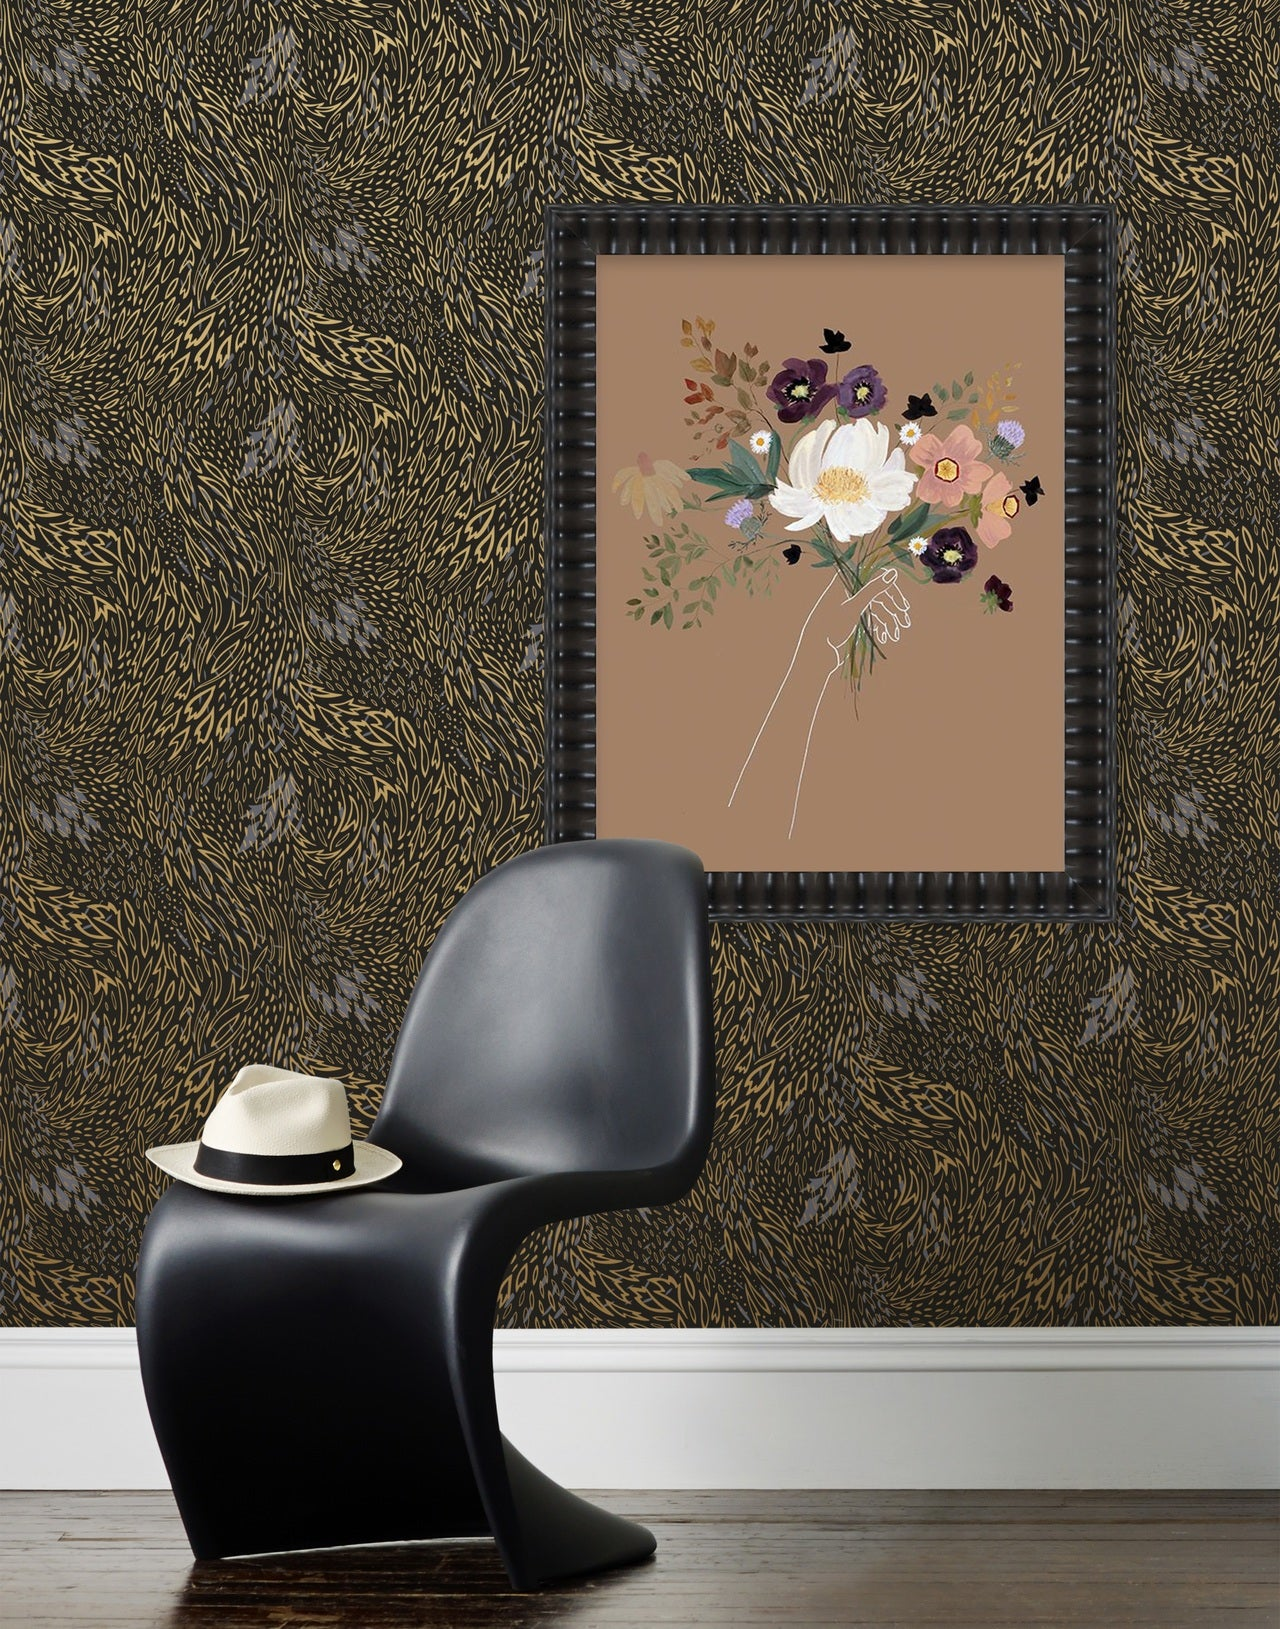 Artfully Paired | how to pair art wallpaper and art | Hygge & West